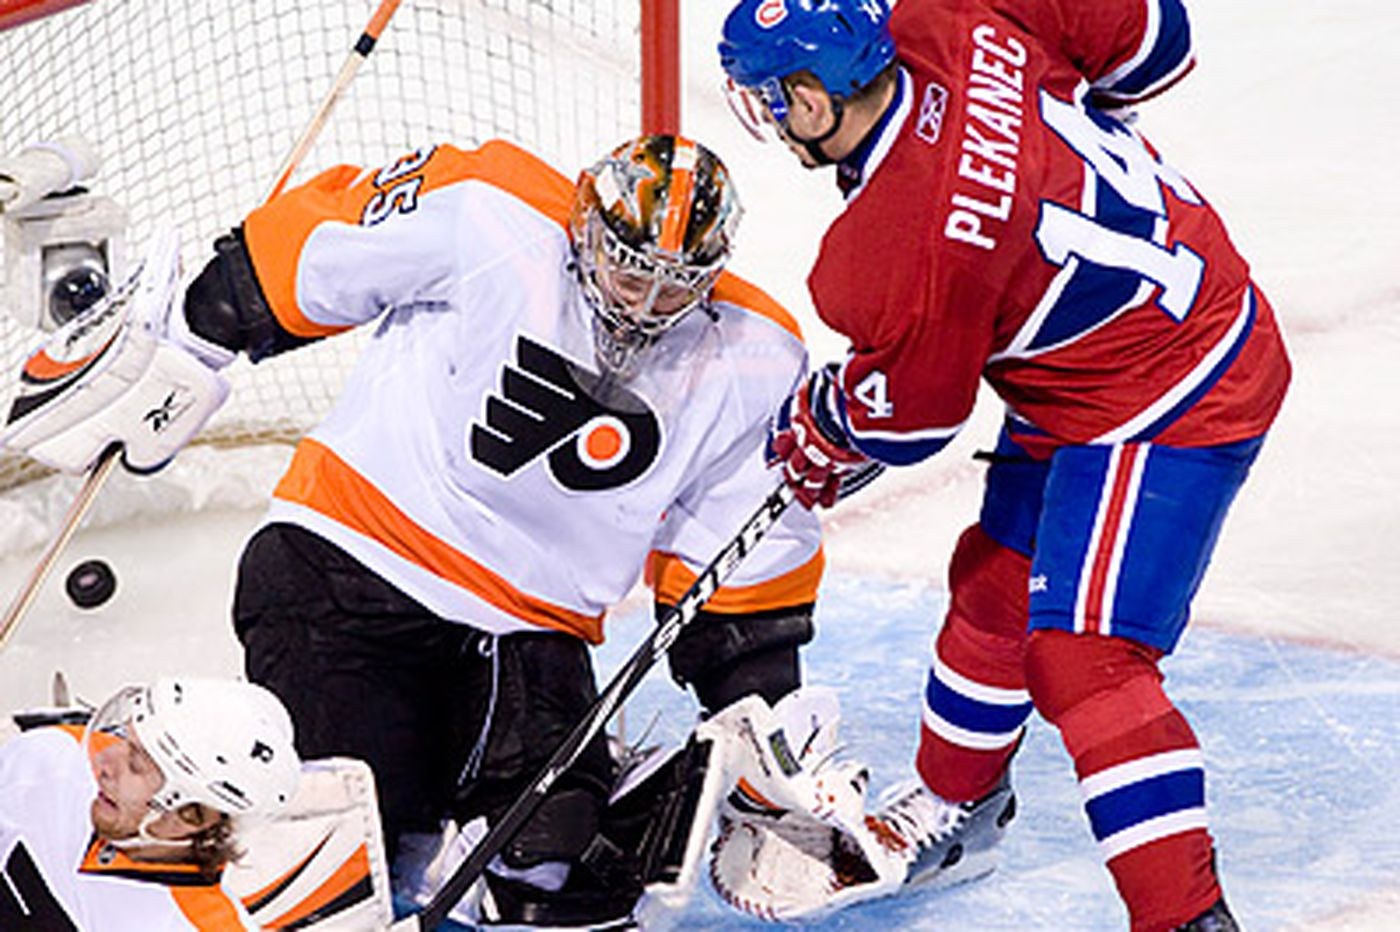 Flyers Notes: Laviolette says Flyers have two starting goalies in Boucher and Bobrovsky